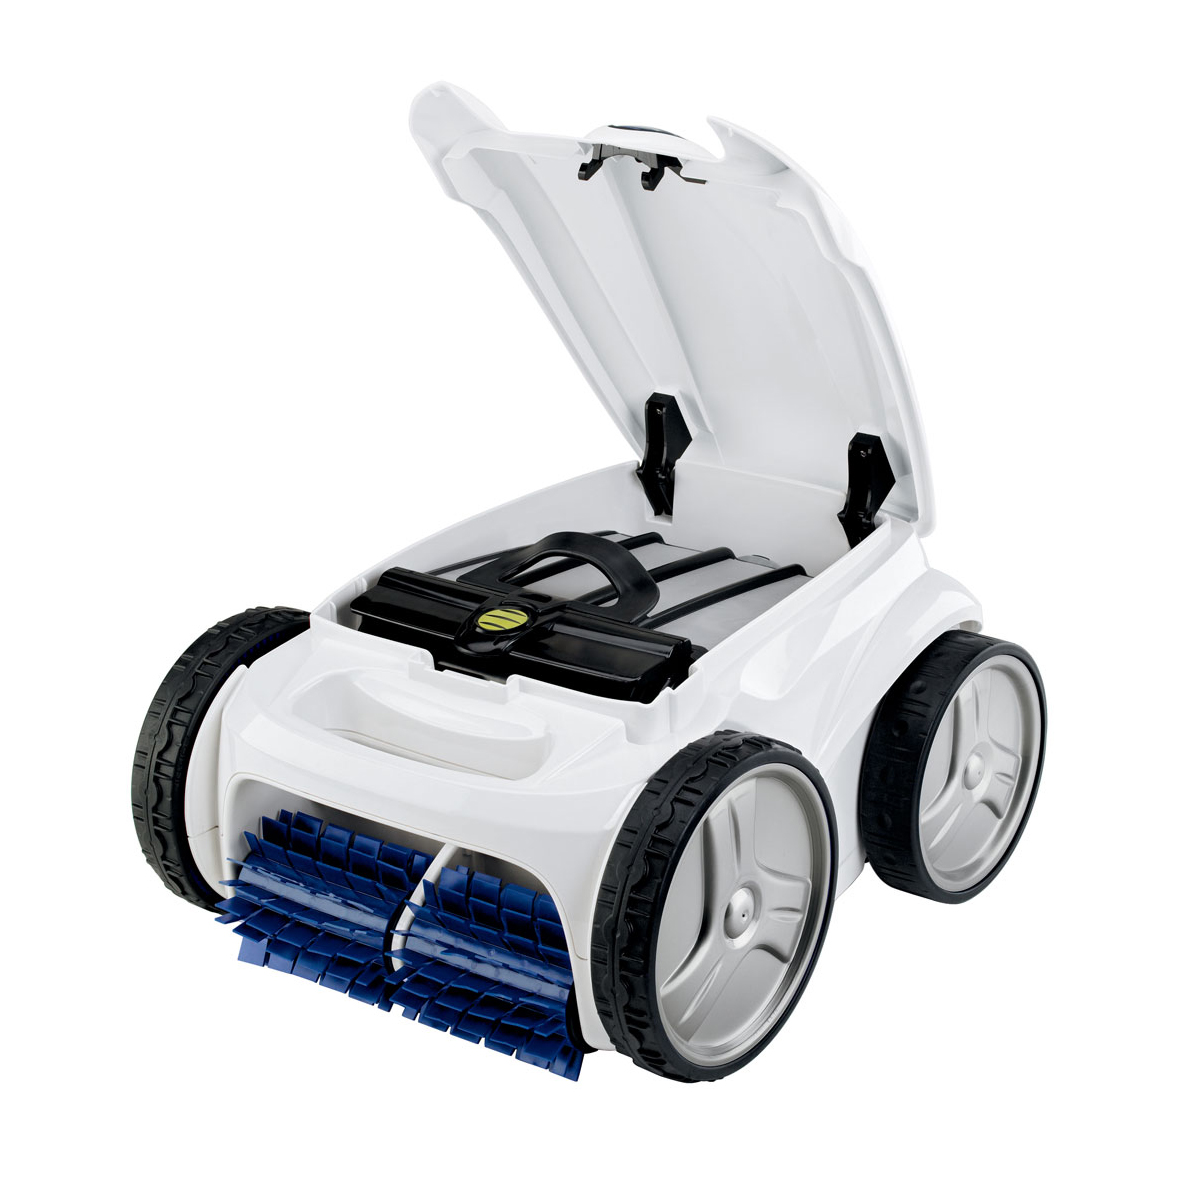 Polaris 935 Robotic Swimming Pool Cleaner